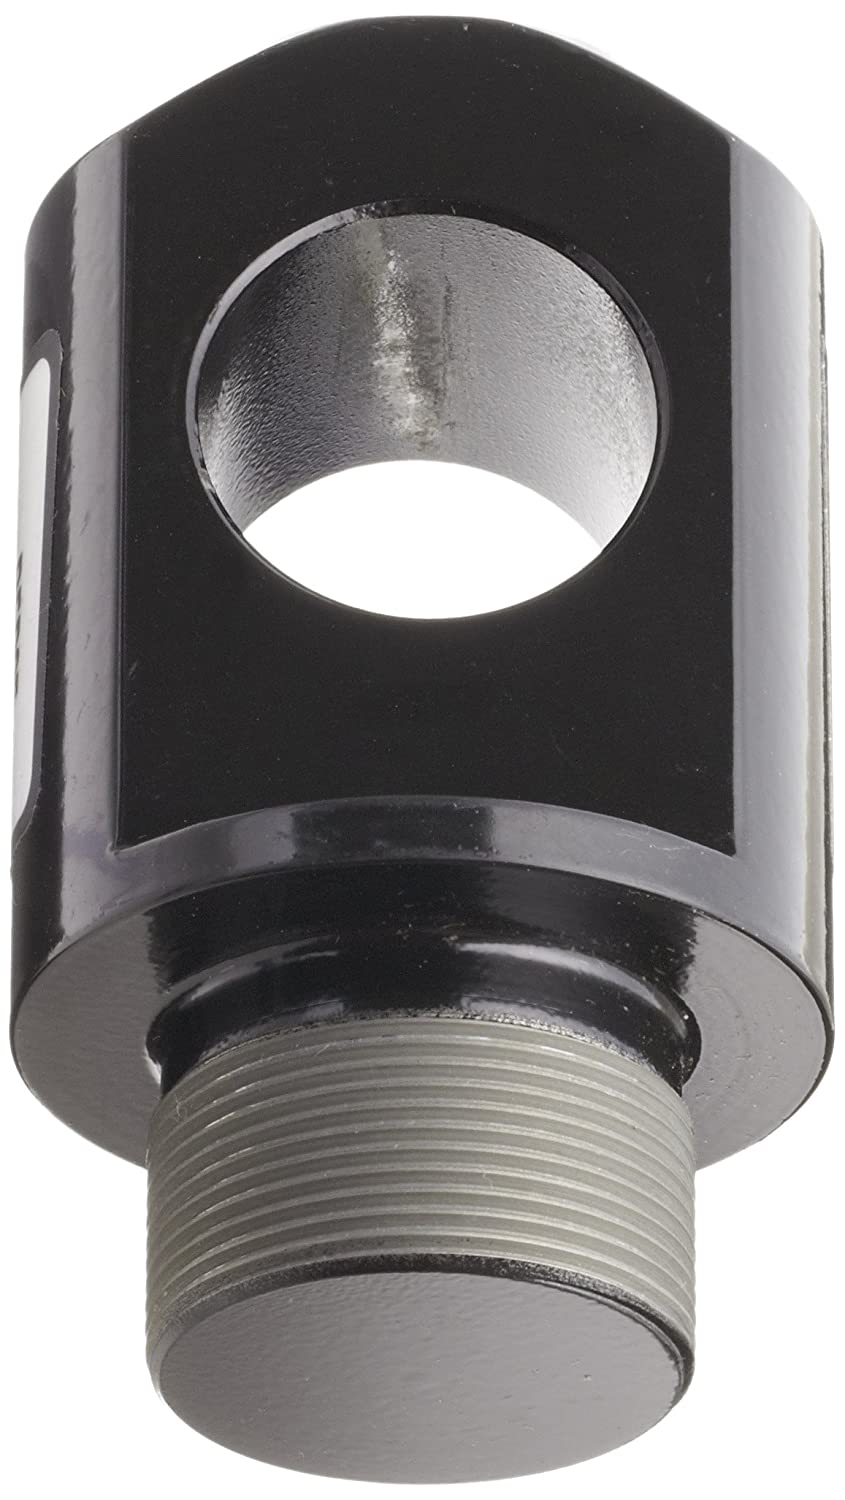 Enerpac REP-25 25-Ton Plunger Clevis